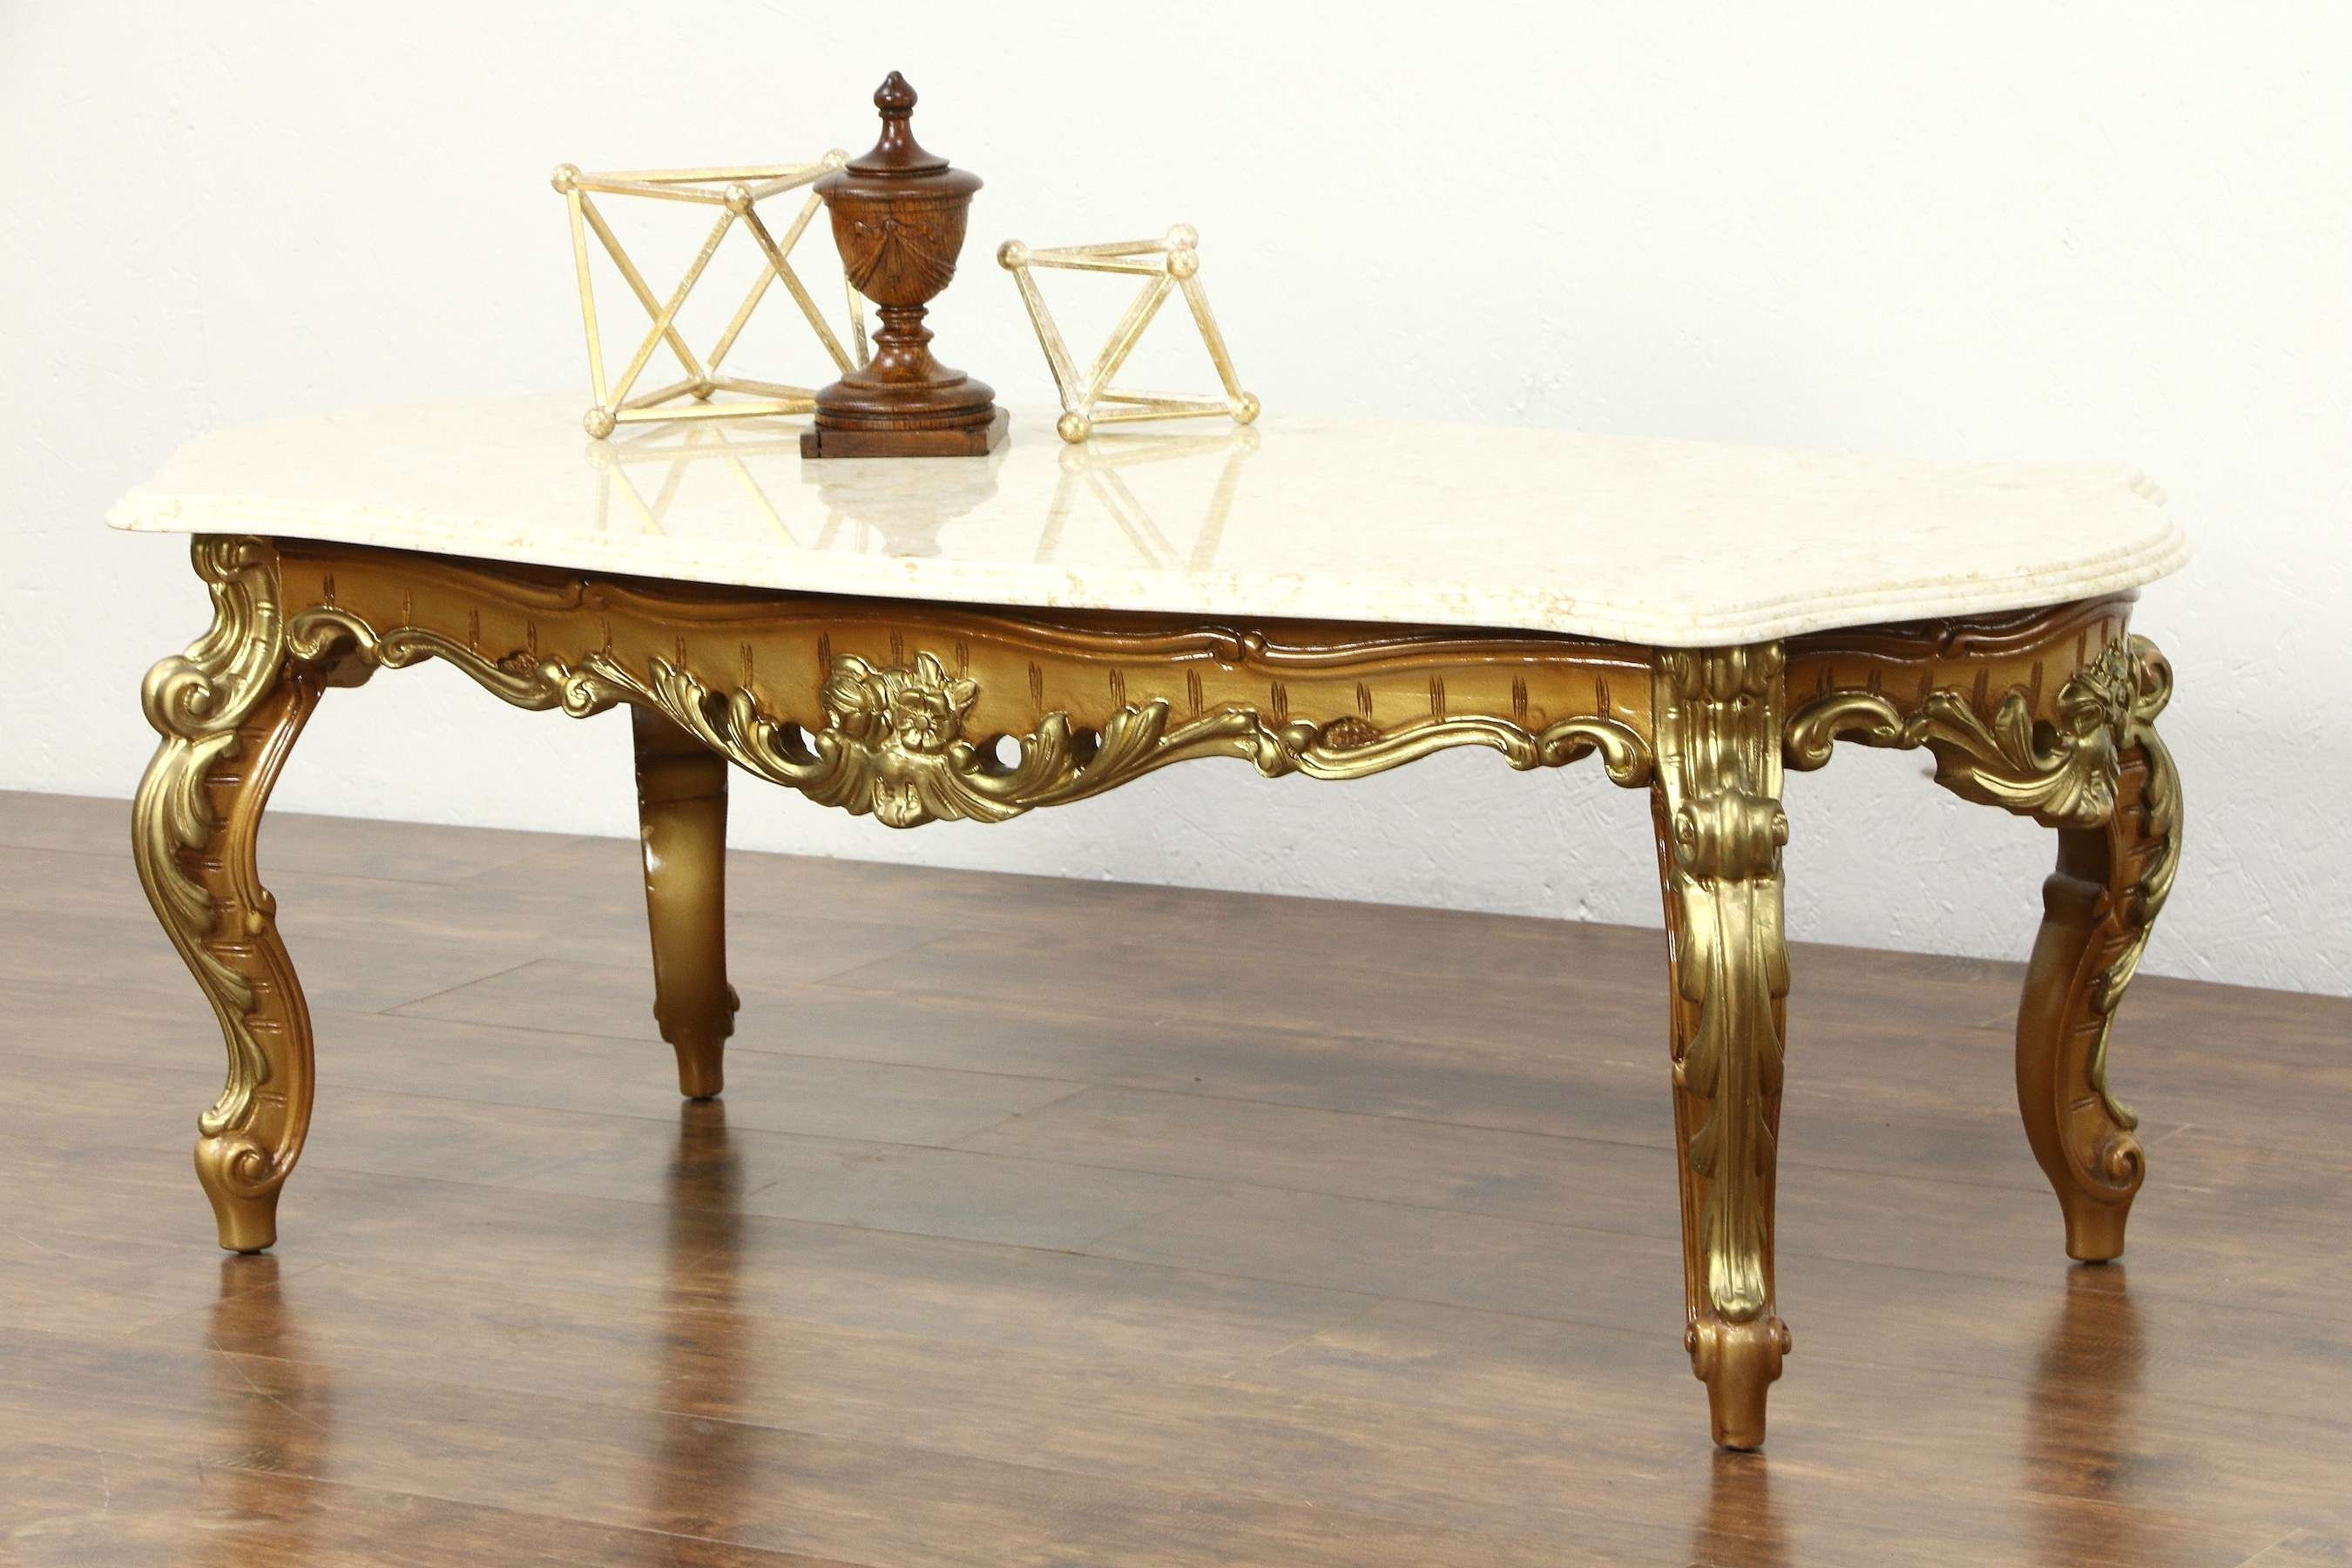 Sold – Carved Gold & Bronze Finish Vintage Coffee Table, Marble Within Recent Bronze Coffee Tables (View 16 of 20)